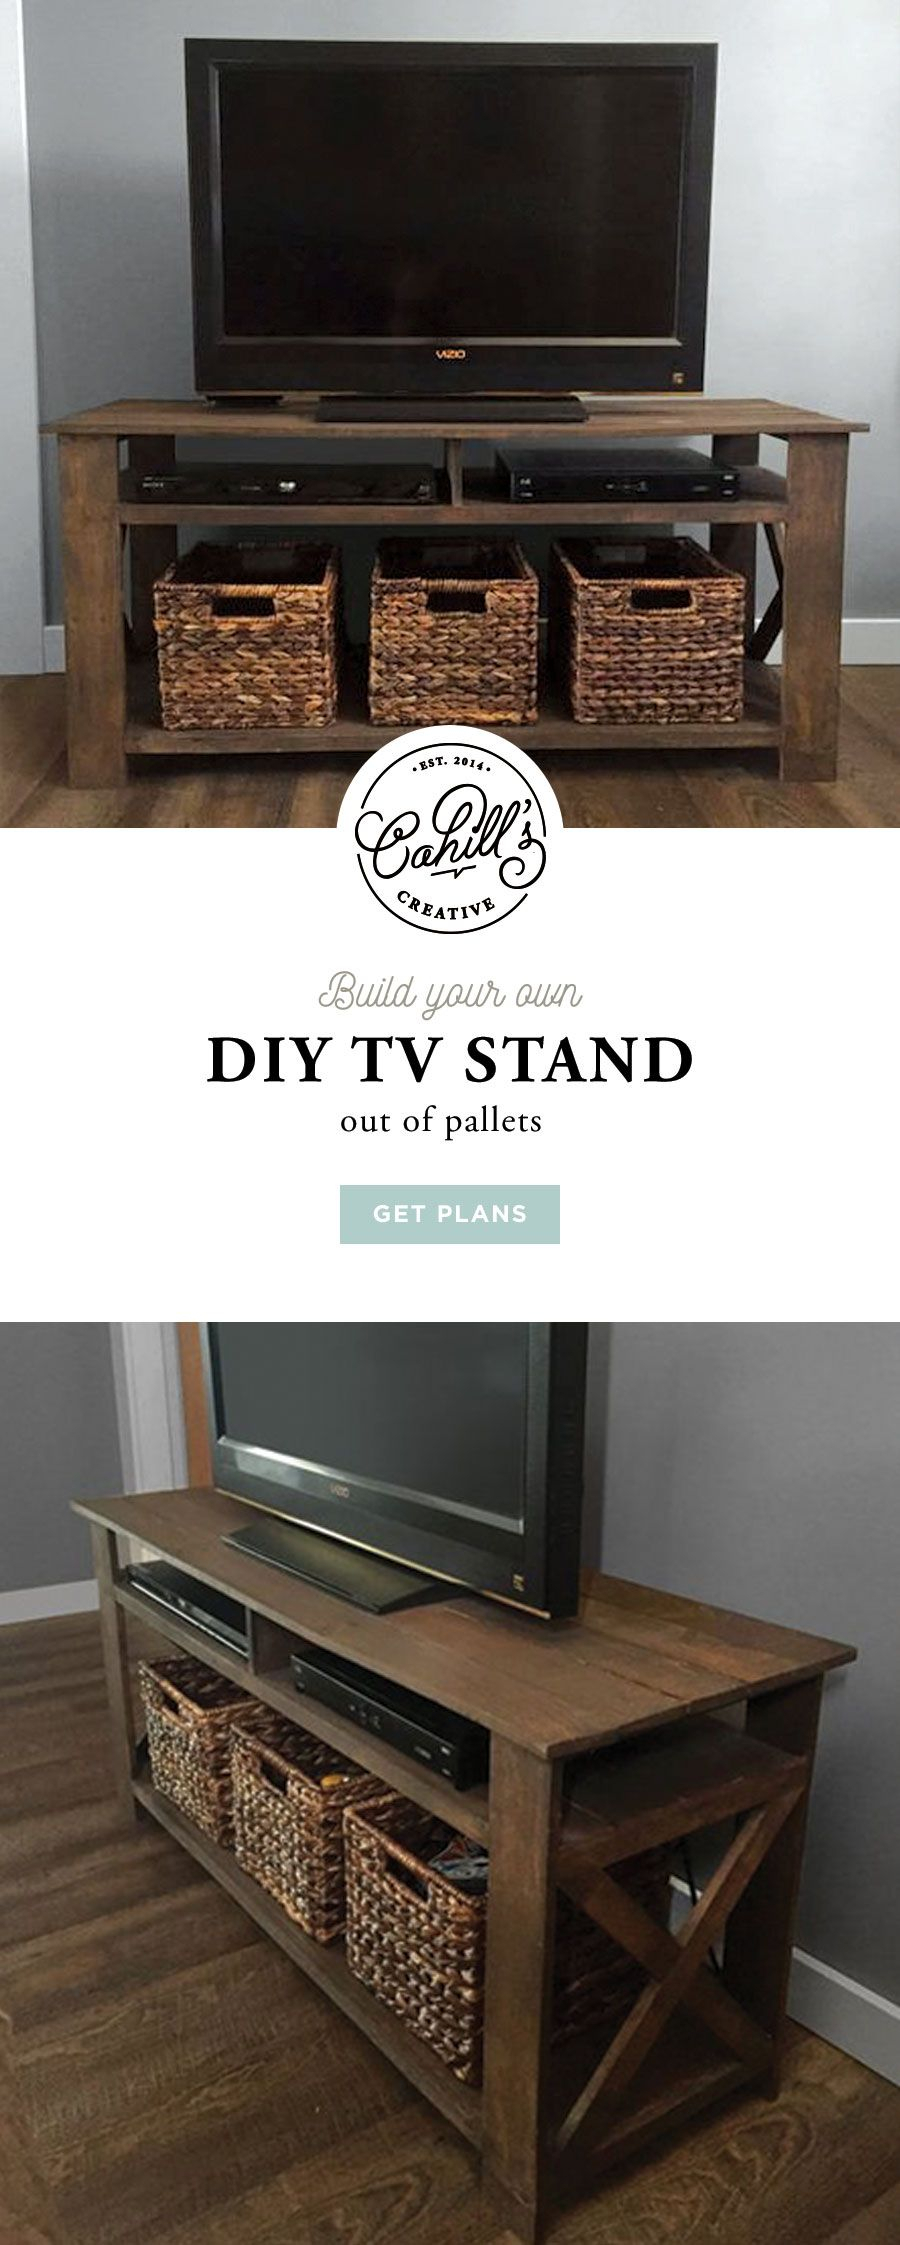 "Diy Pallet Tv Stand Plans | Woodworking Plans, Diy Furniture Intended For Ericka Tv Stands For Tvs Up To 42"" (Gallery 18 of 30)"